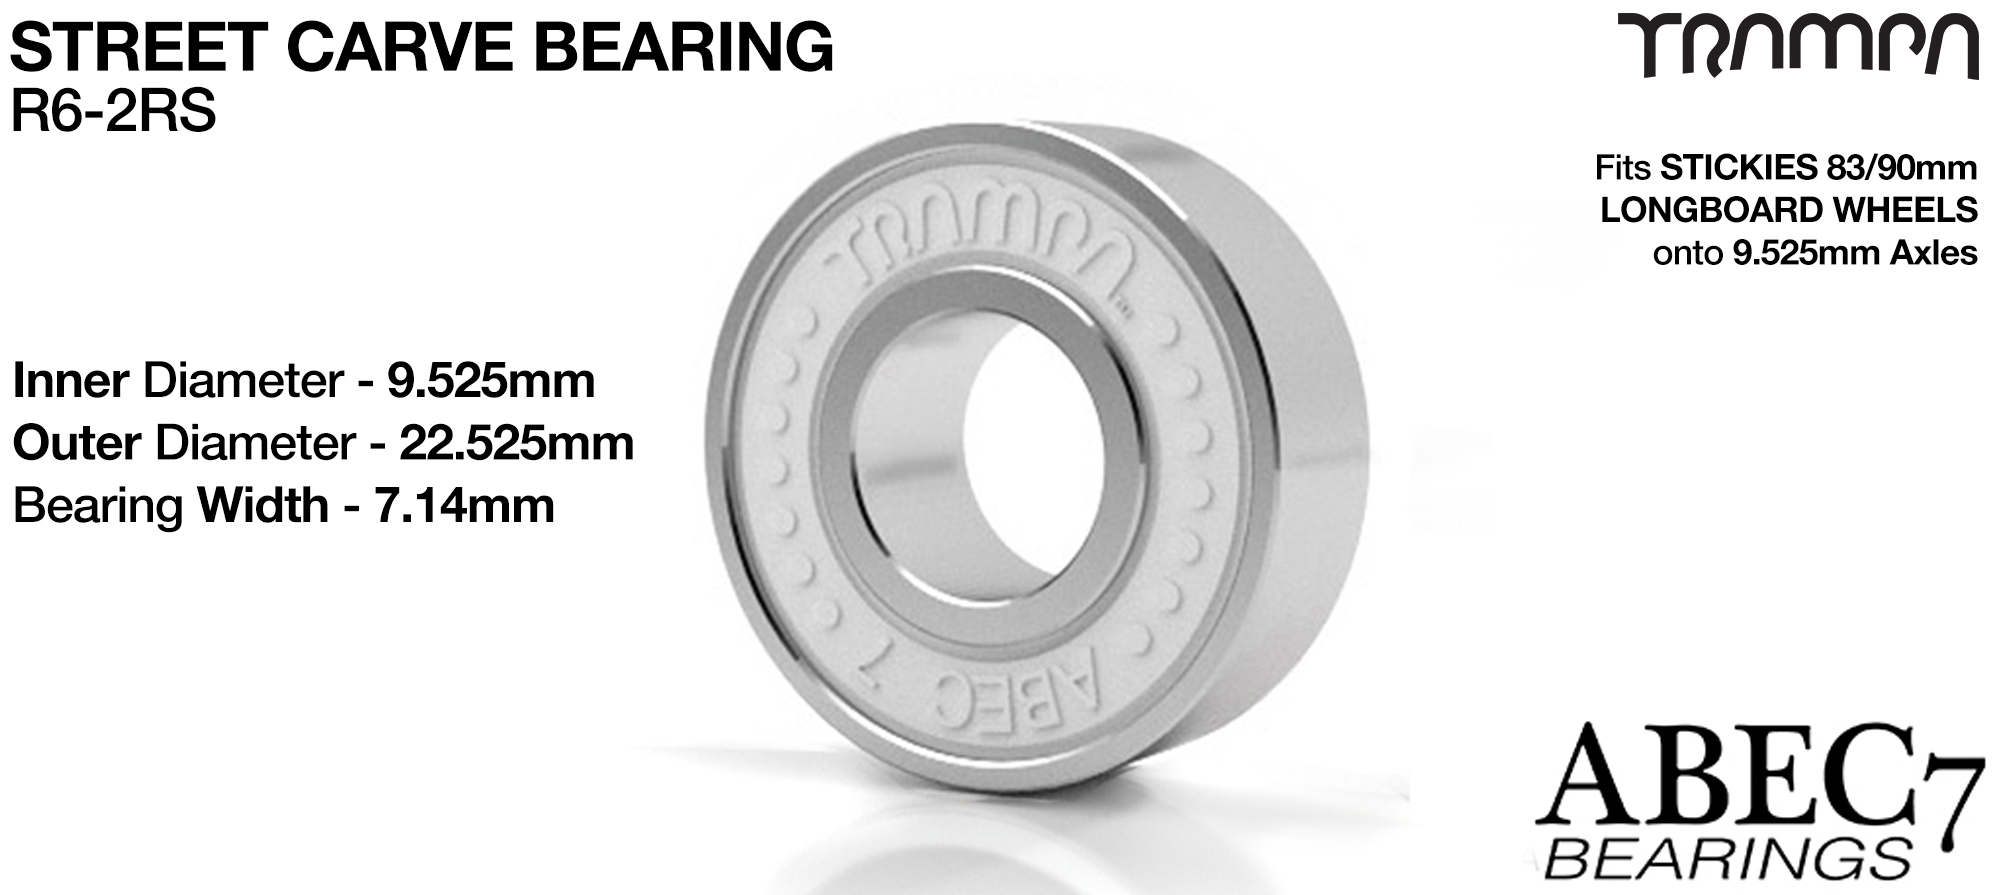 9.525mm Axle TRAMPA StreetCarve Bearings 2 x WHITE (+£5)